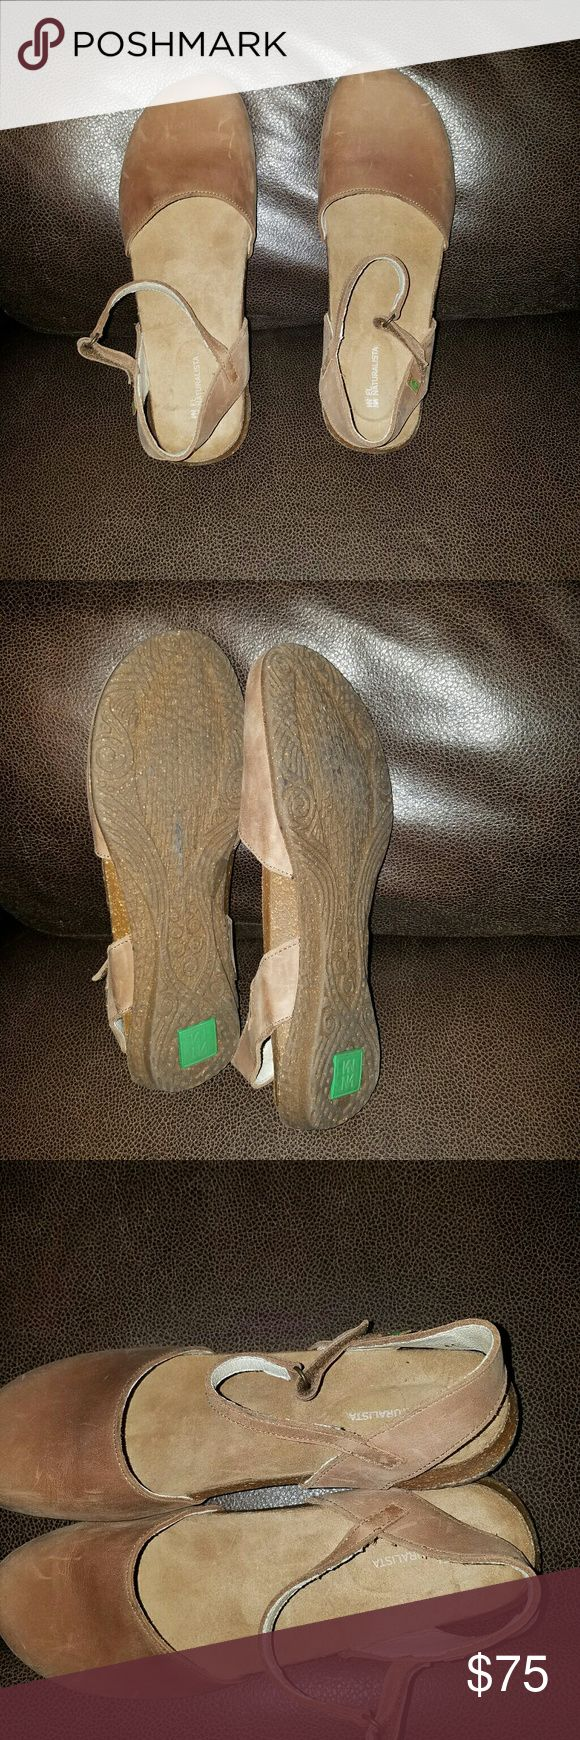 *NEW*EL naturalista shoes El naturalista wakataua shoes , full grain leather upper , genuine leather lining , high quality synthetic rubber outsoles,  hook and loop strap for easy on n off, wood 2 color ,, new never wore .. the size says 41 which says a woman's 10 but on here it says a 41 is an 11.. so I'll go inbetween.. Shoes Flats & Loafers